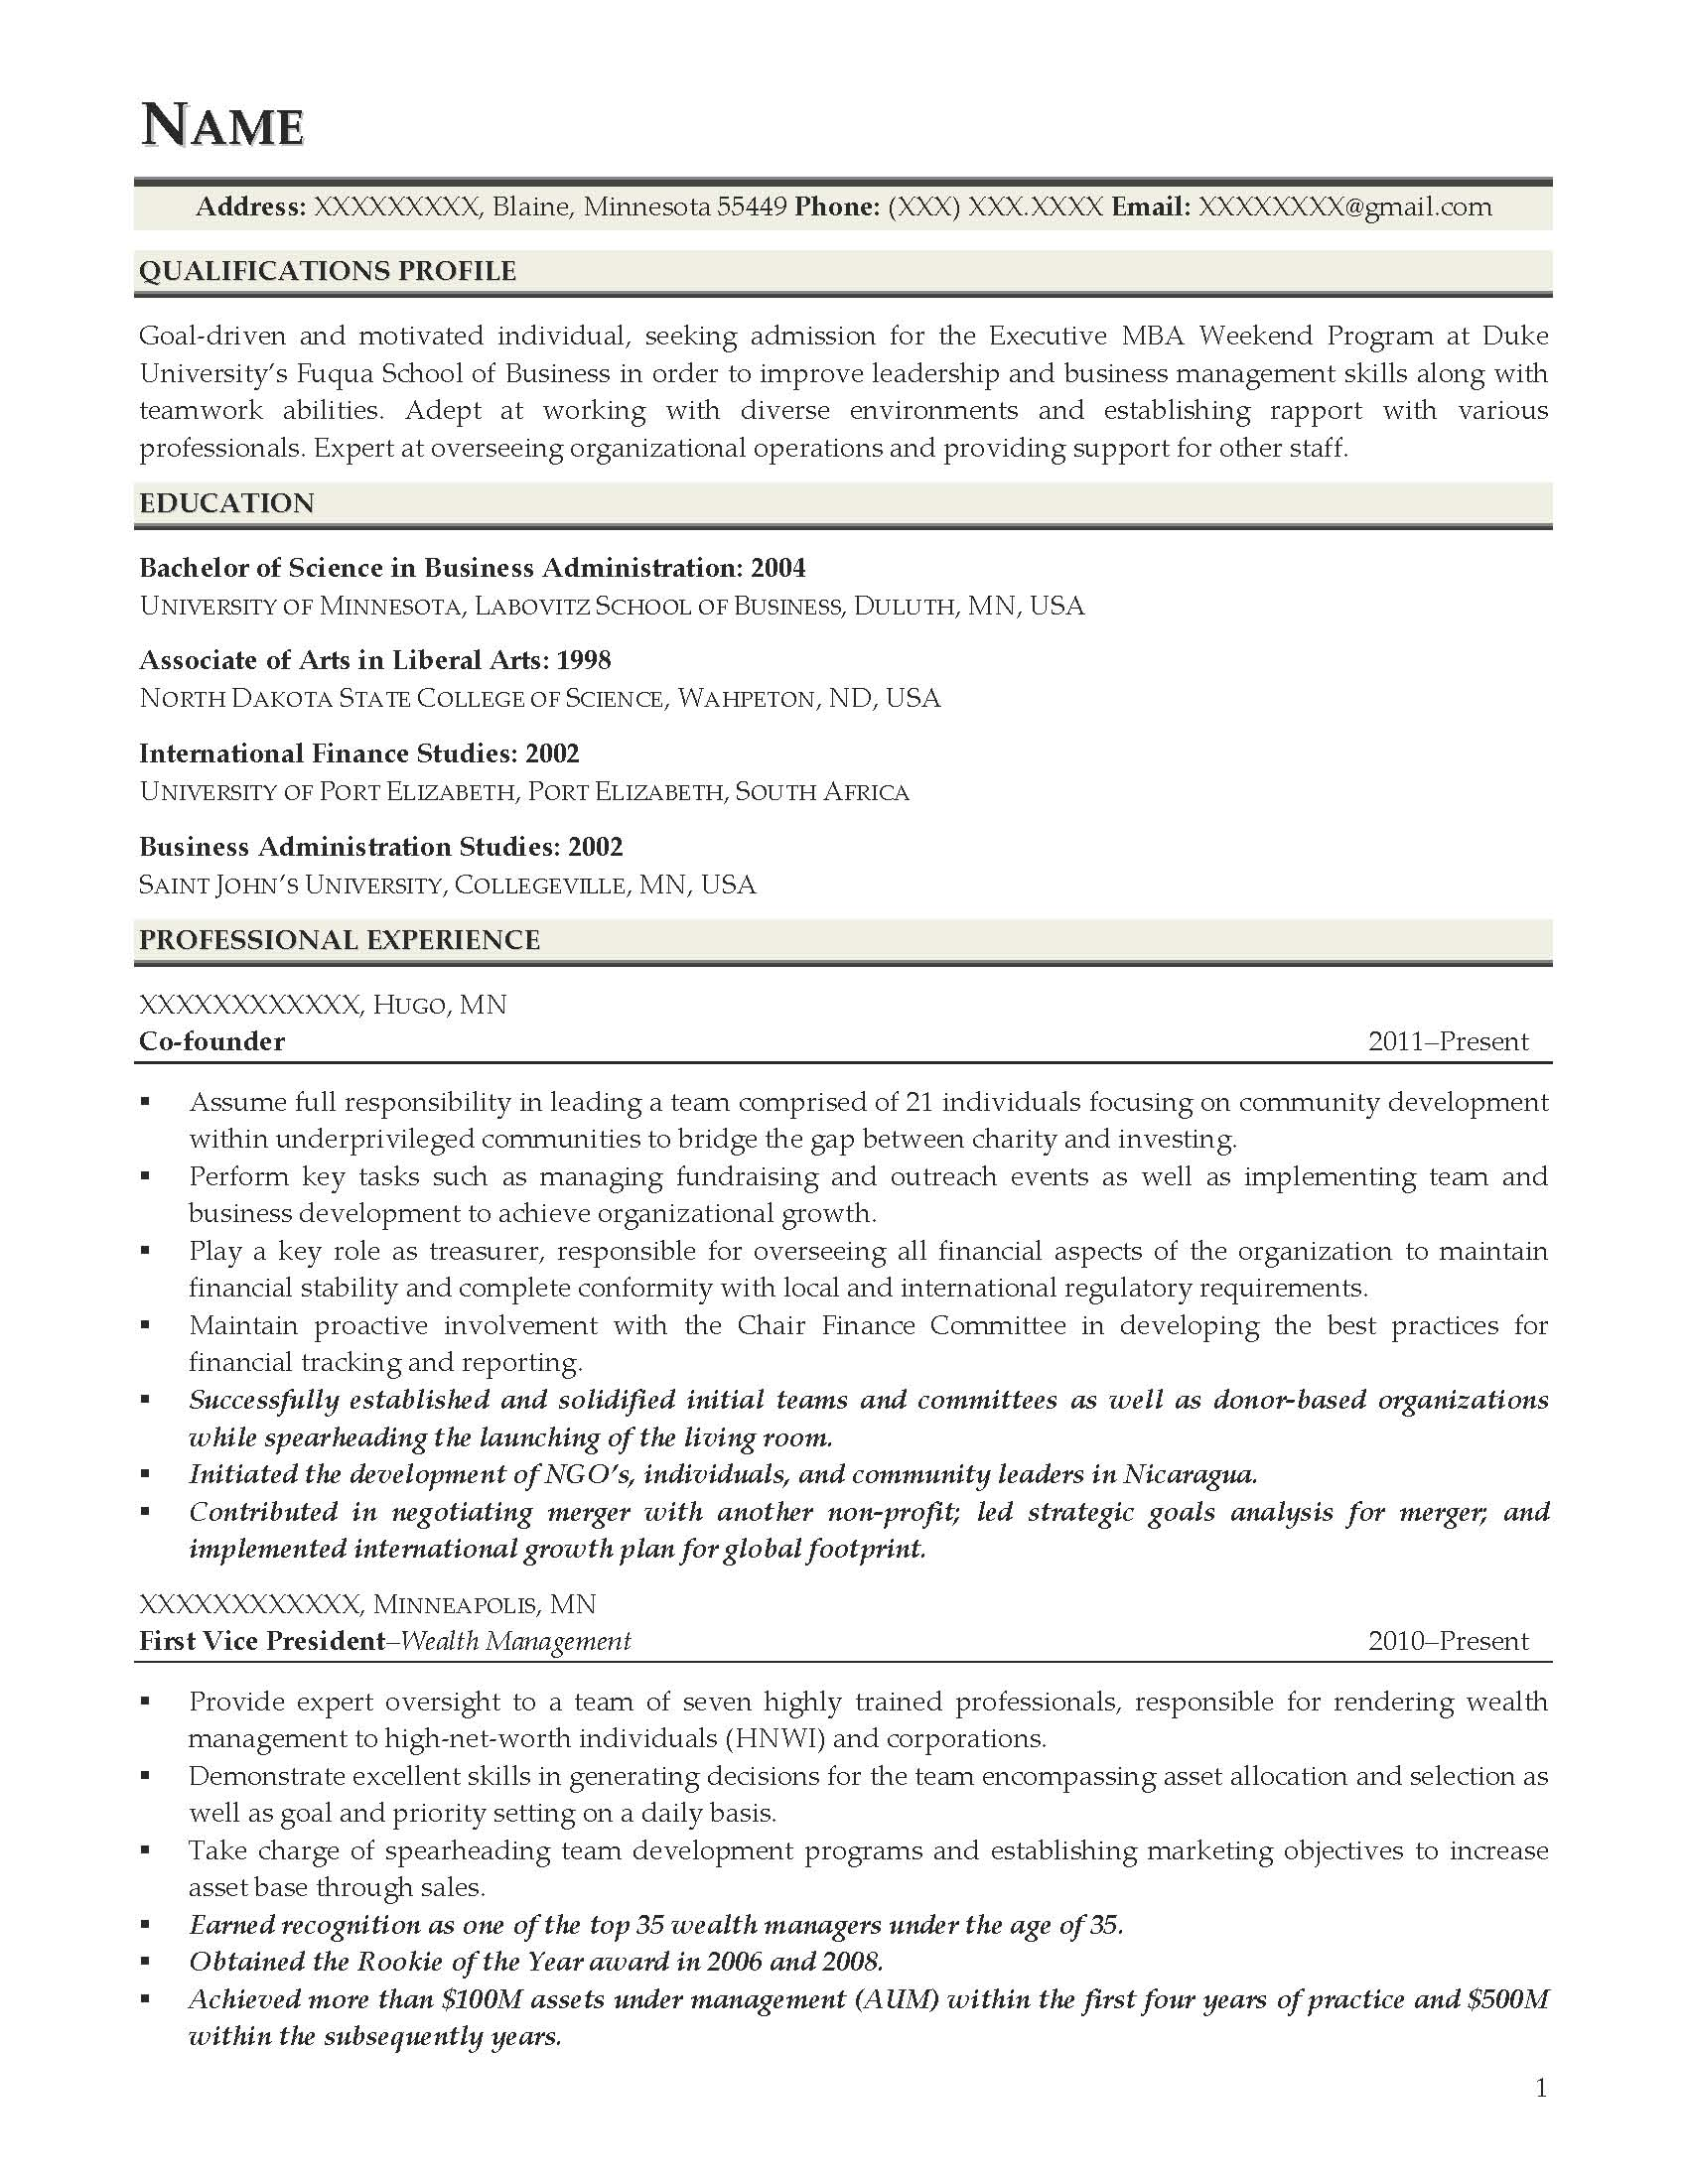 good resume examples for all careers prime duke fuqua template executive mba weekend Resume Duke Fuqua Resume Template